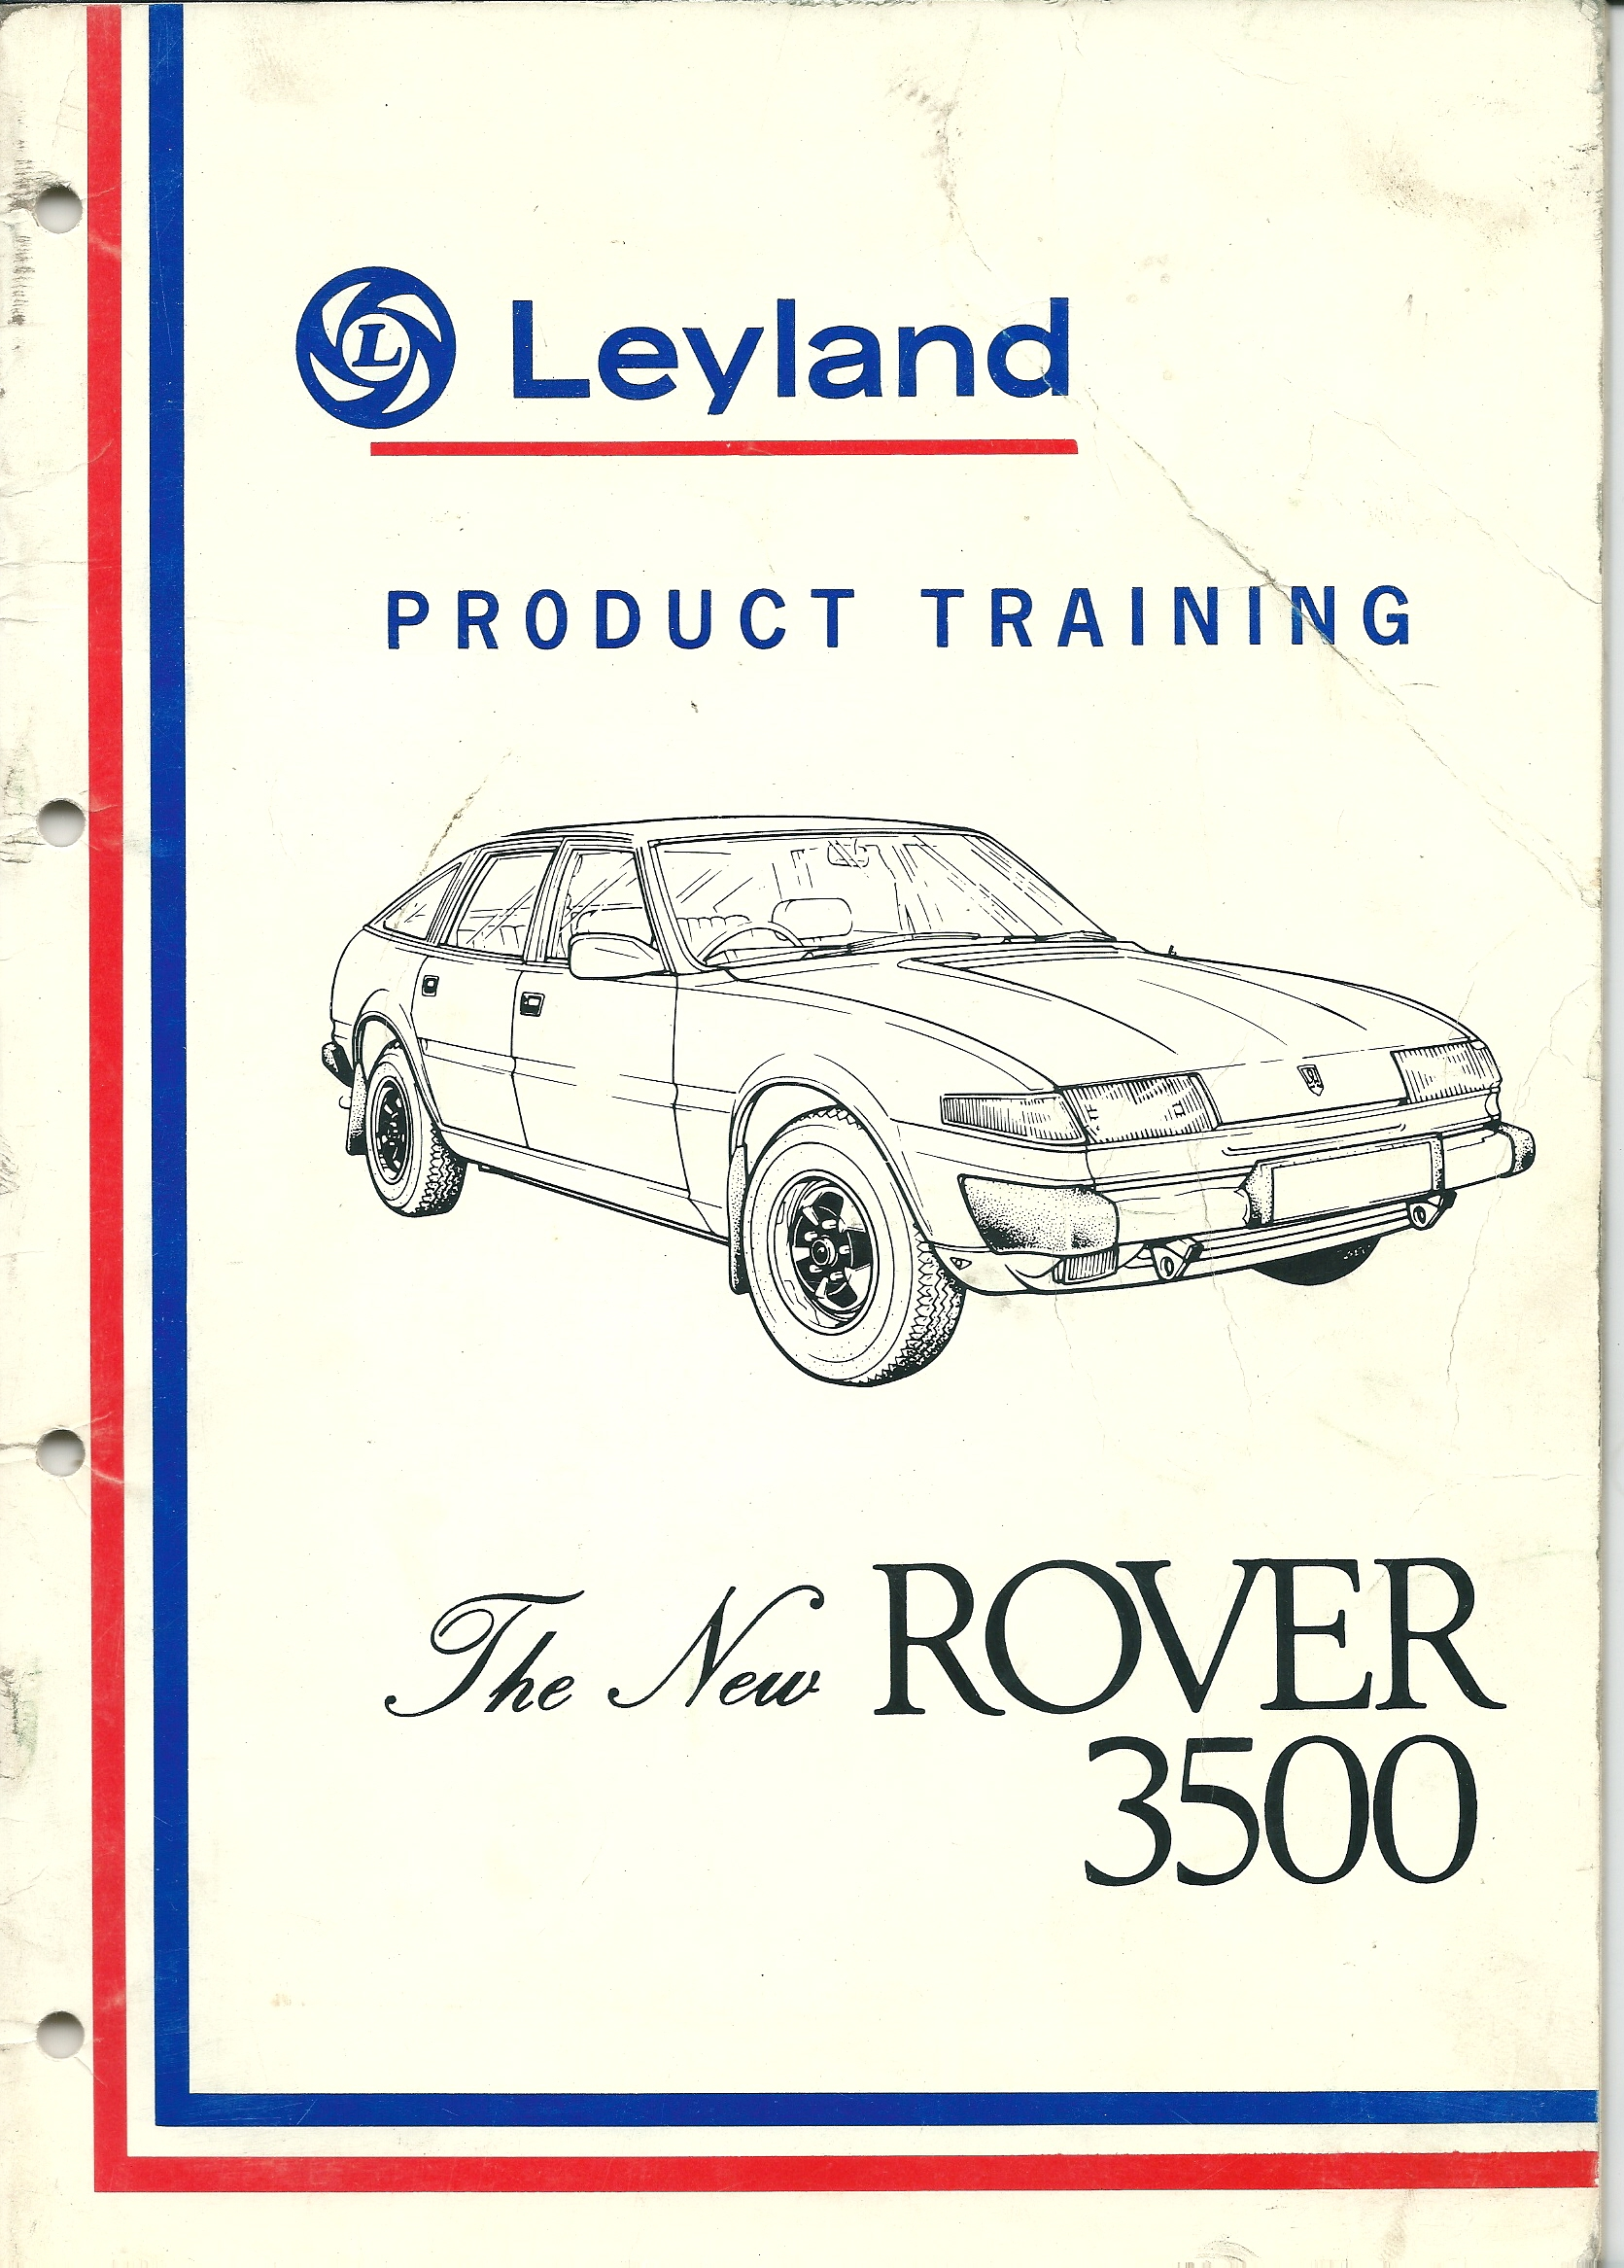 Workshop Manuals Rover Sd1 Australia Ignition Wiring Diagram Dsc 0101 Product Training Manual Leyland Tp955 Circa 1976